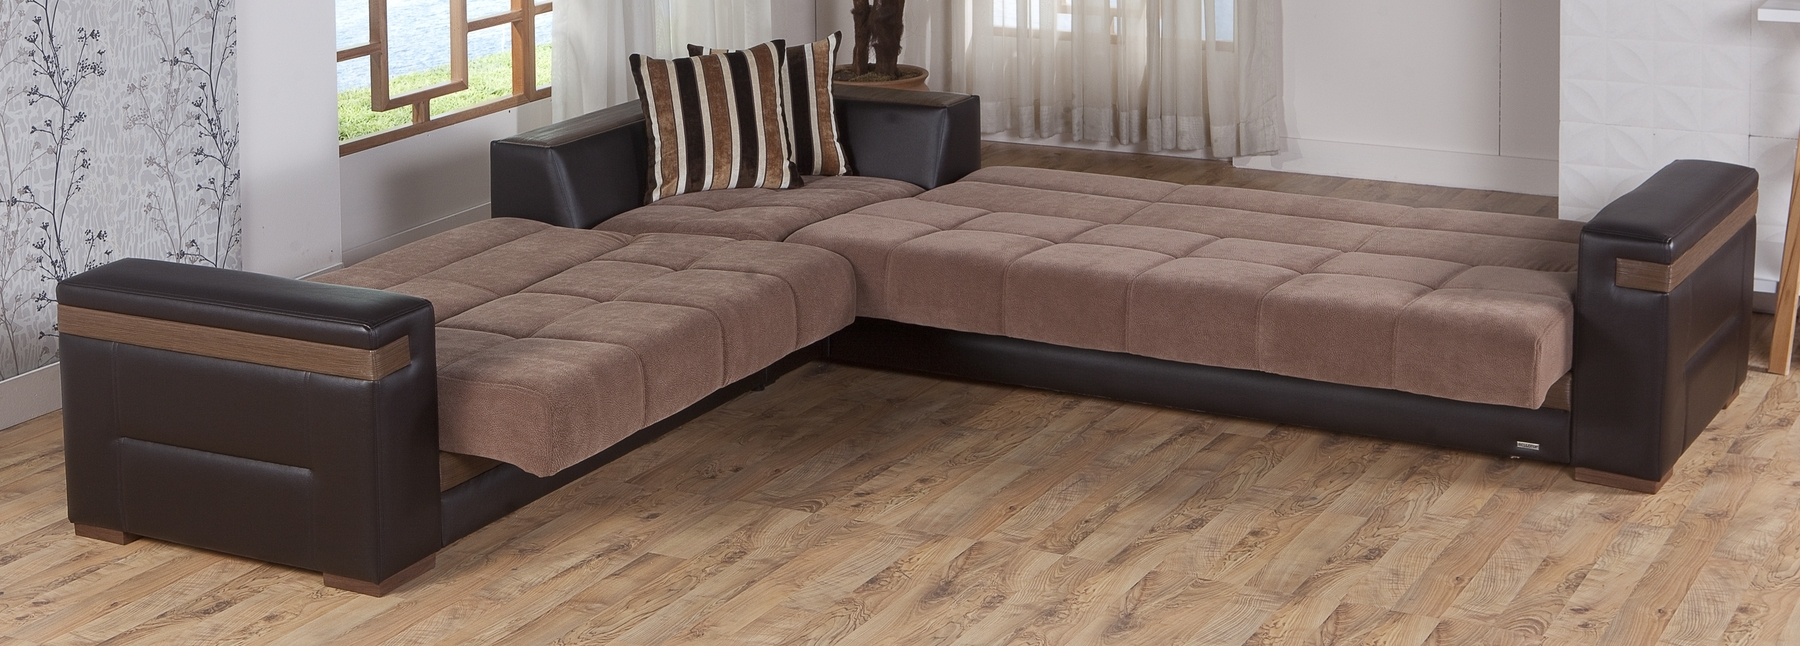 Moon Troy Brown Sectional Sofa Moon Sunset Furniture Sectional Sofas Pertaining To Sectional Sofas In Stock (View 7 of 10)